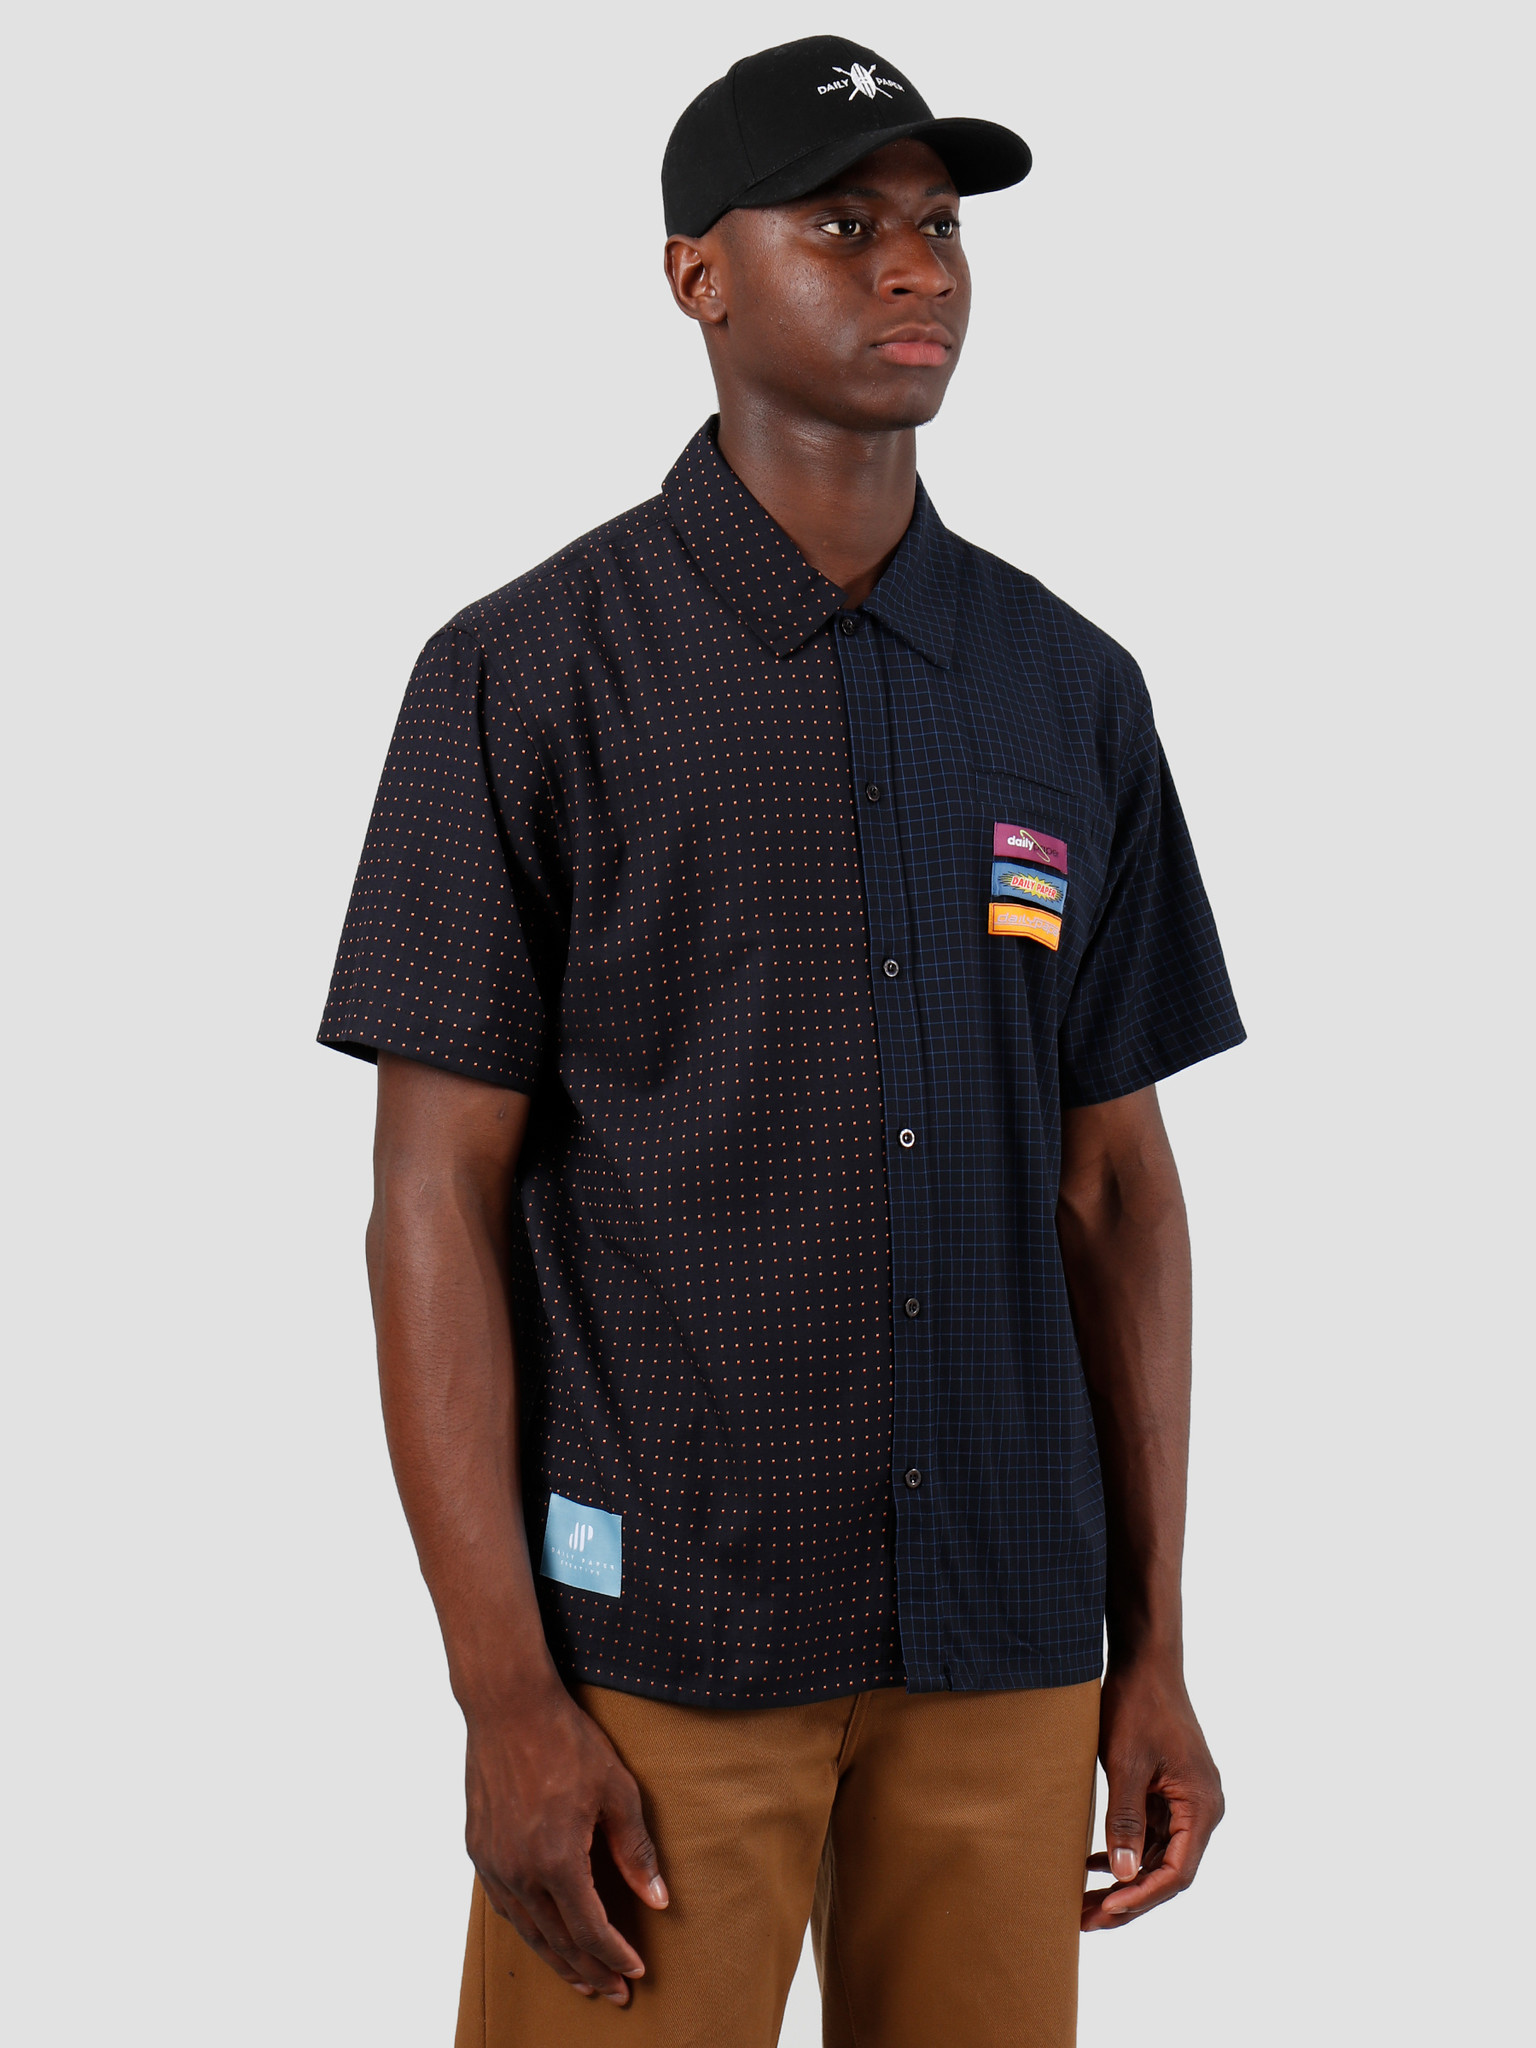 Daily Paper Daily Paper Gatik 1 Shirt Black Dot Check 19F1SH02-01